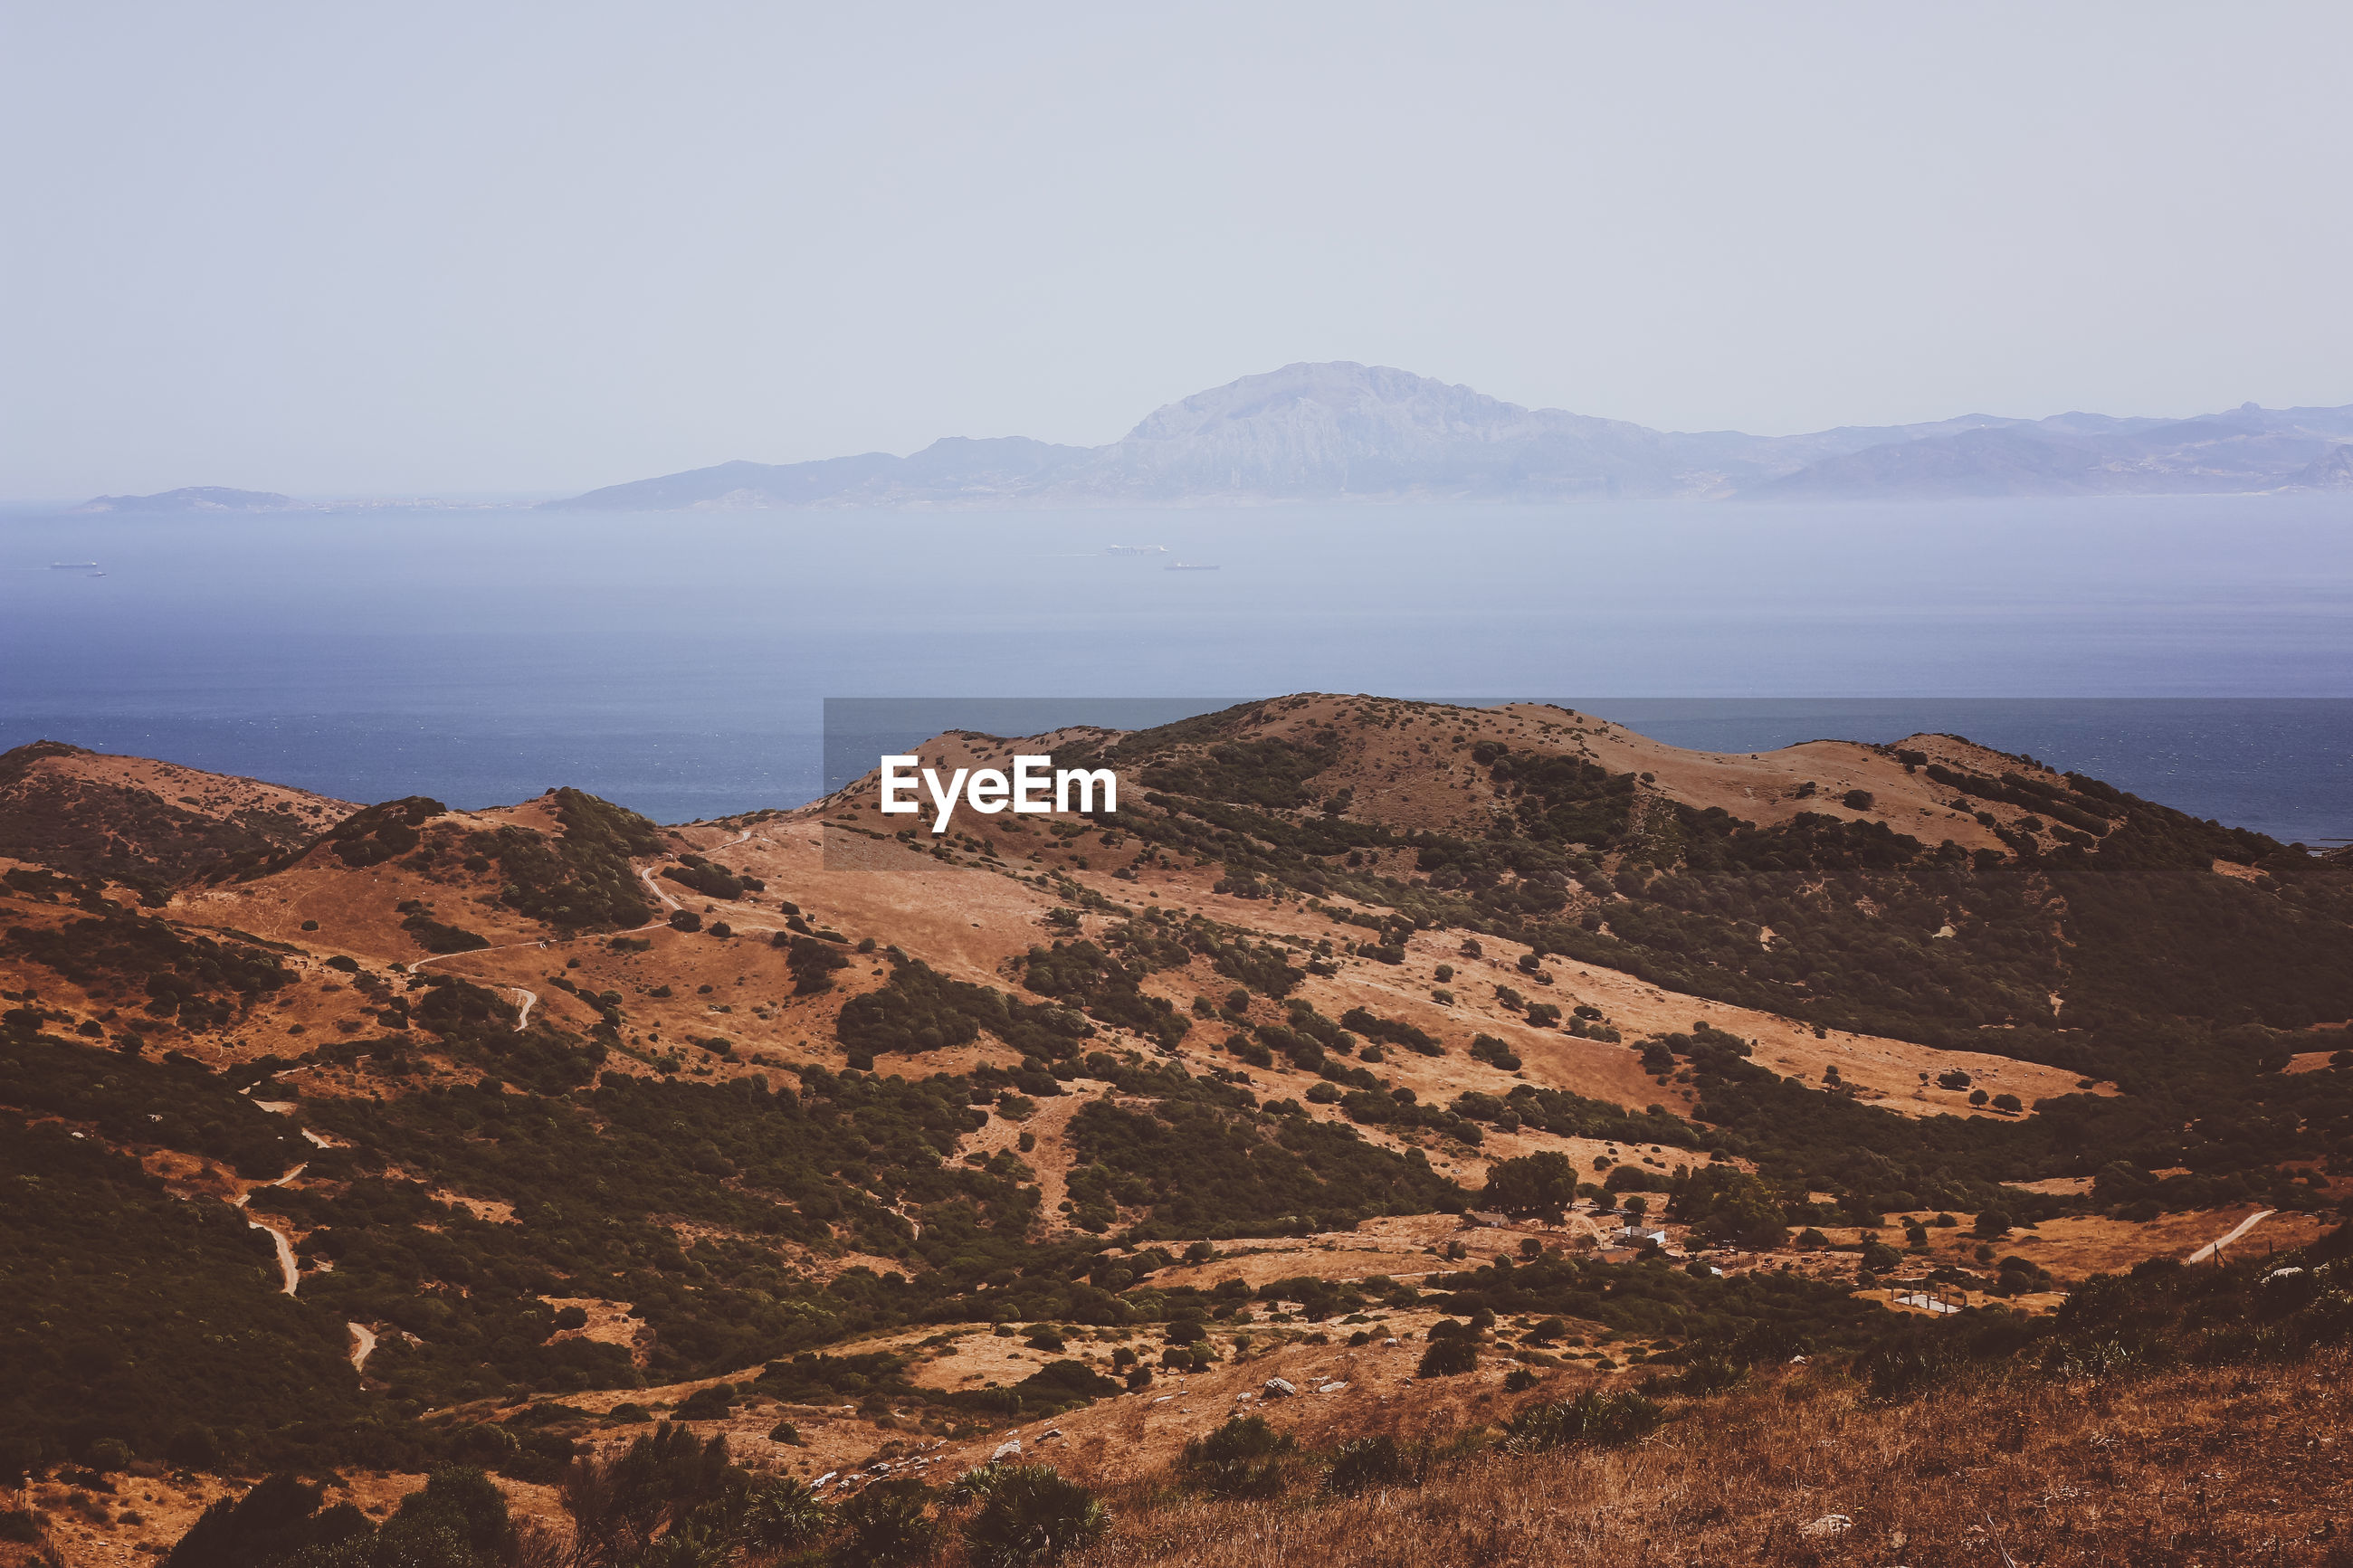 SCENIC VIEW OF SEA BY MOUNTAINS AGAINST CLEAR SKY